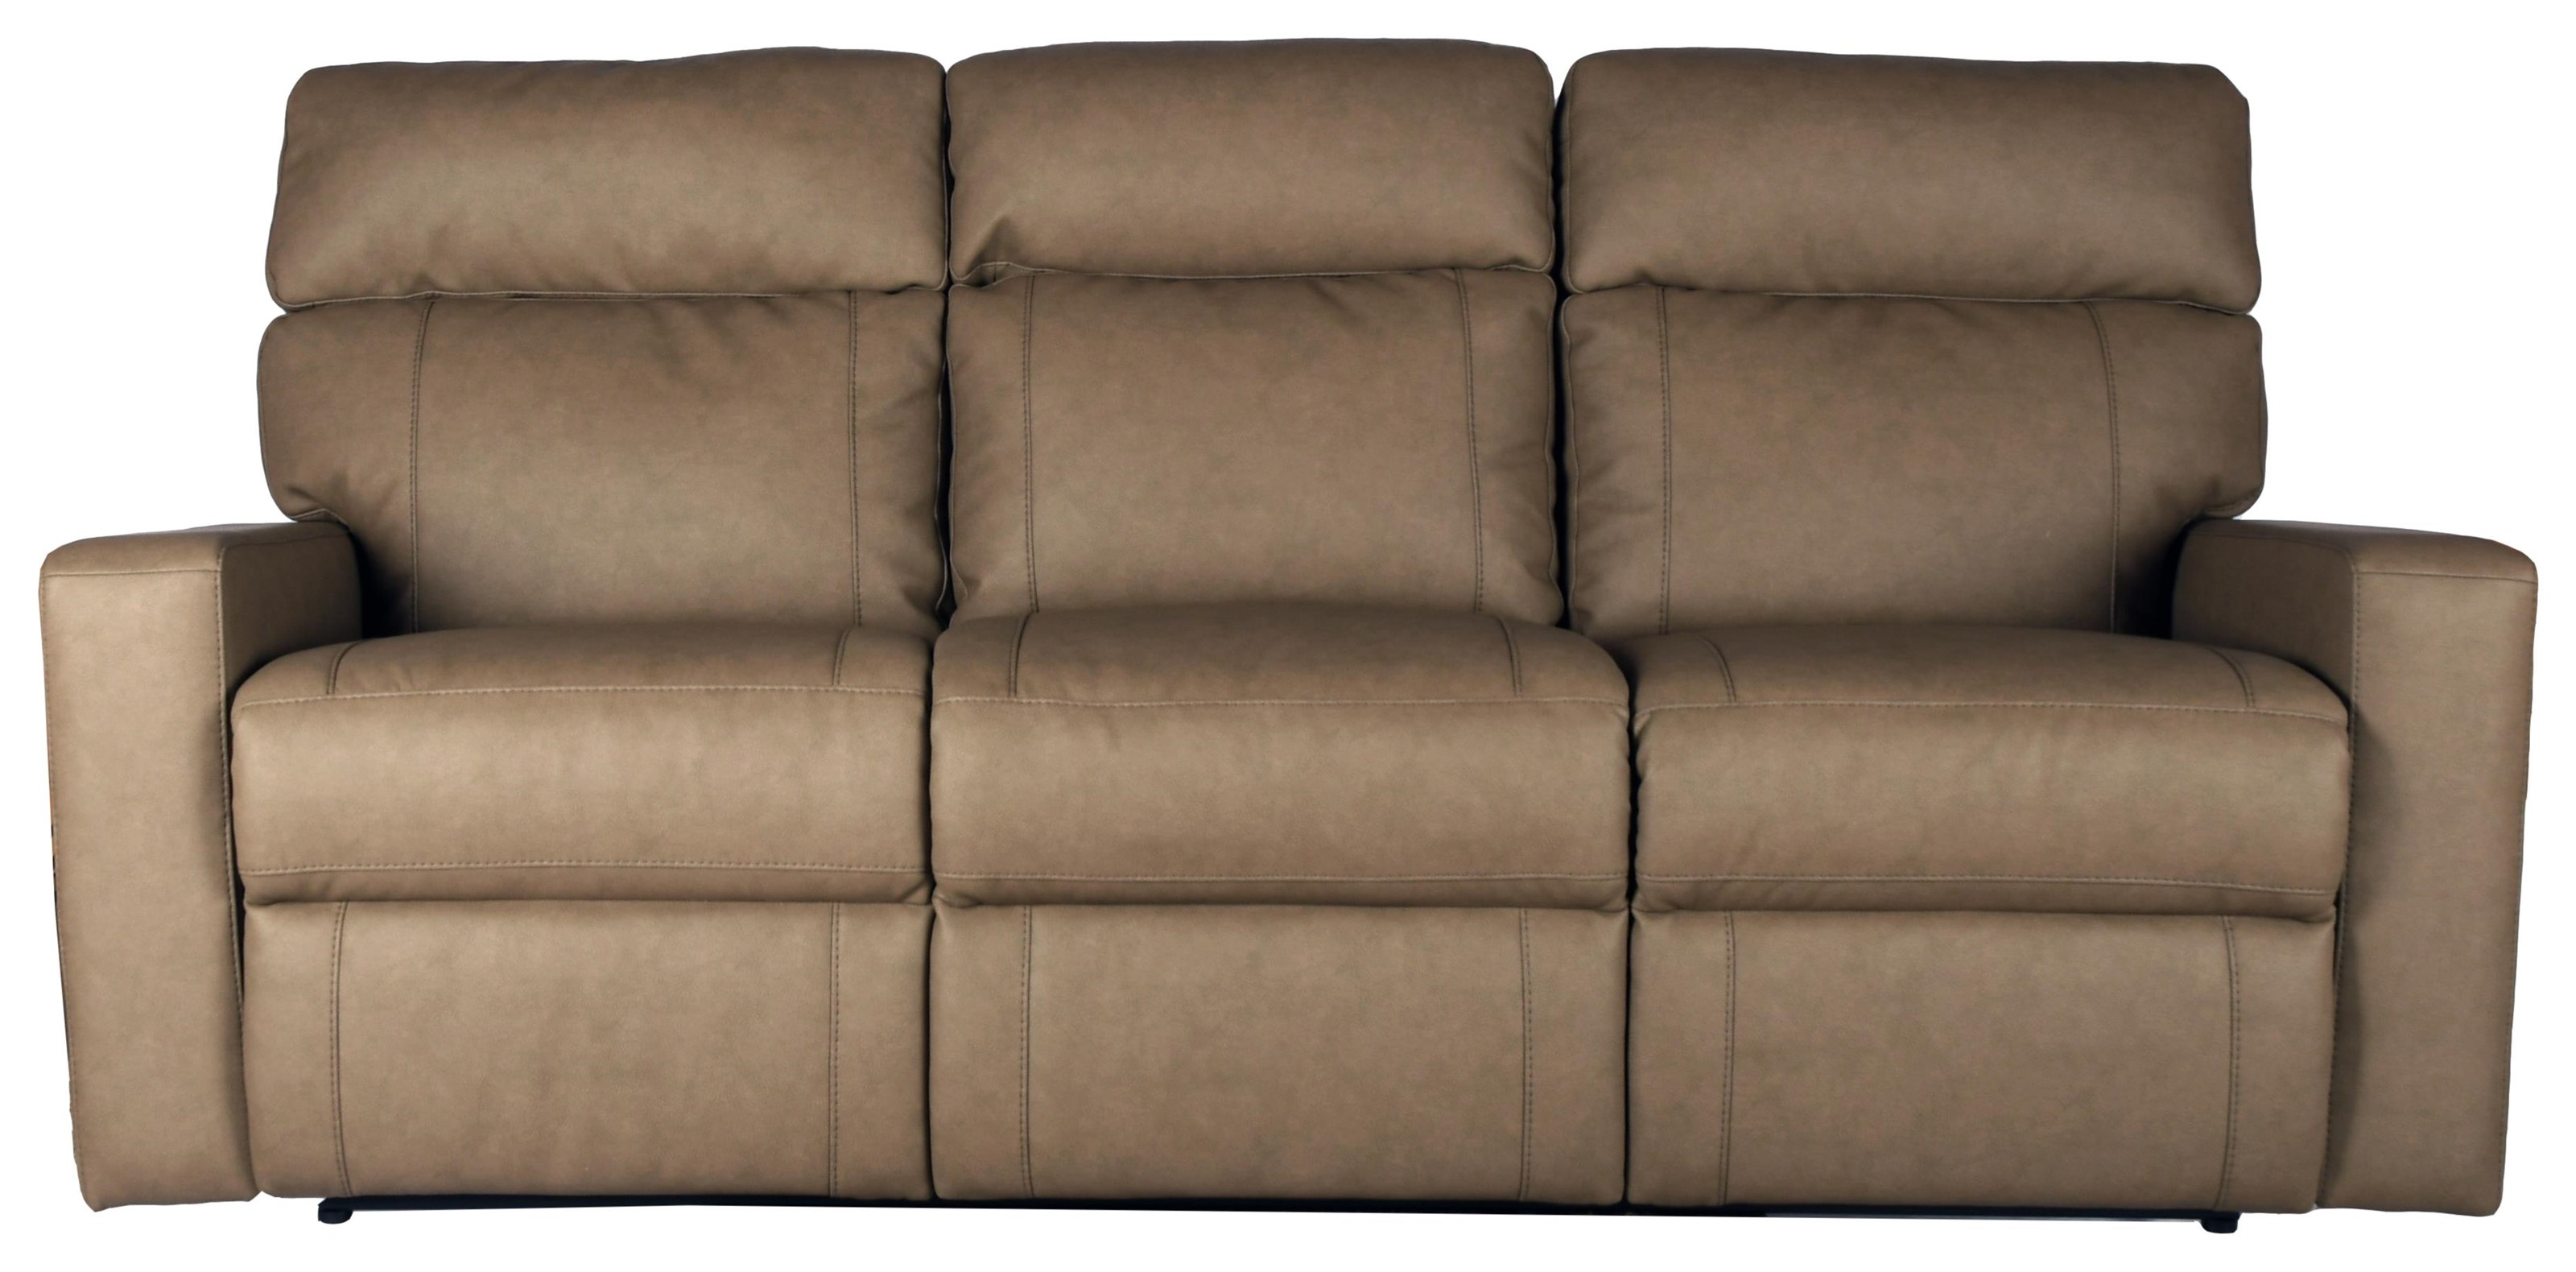 Frontenac Reclining Sofa by Rockwood at Bennett's Furniture and Mattresses